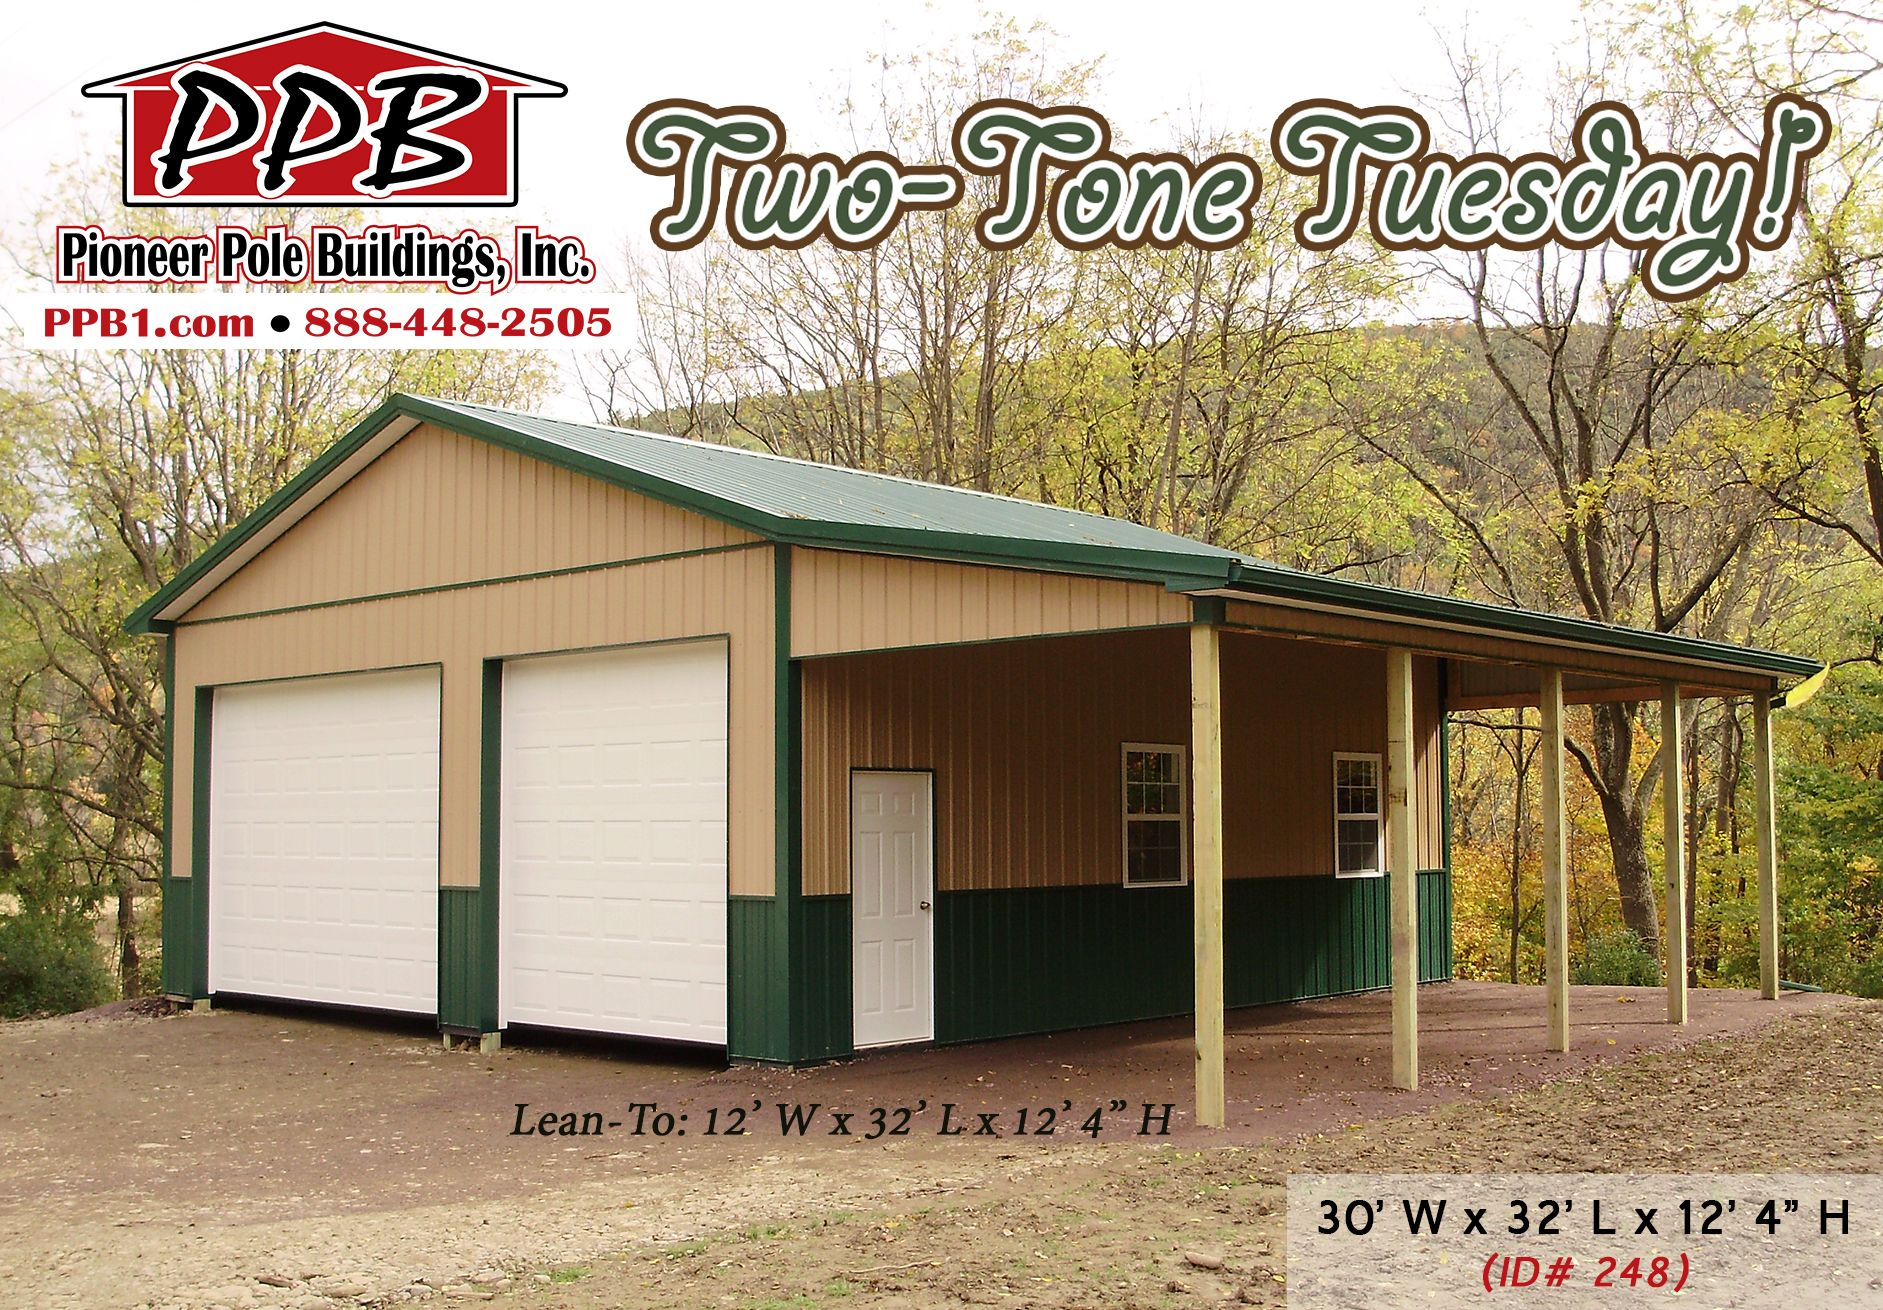 Two tone tuesday dimensions 30 w x 32 l x 12 4 h id for Pole barn roof pitch